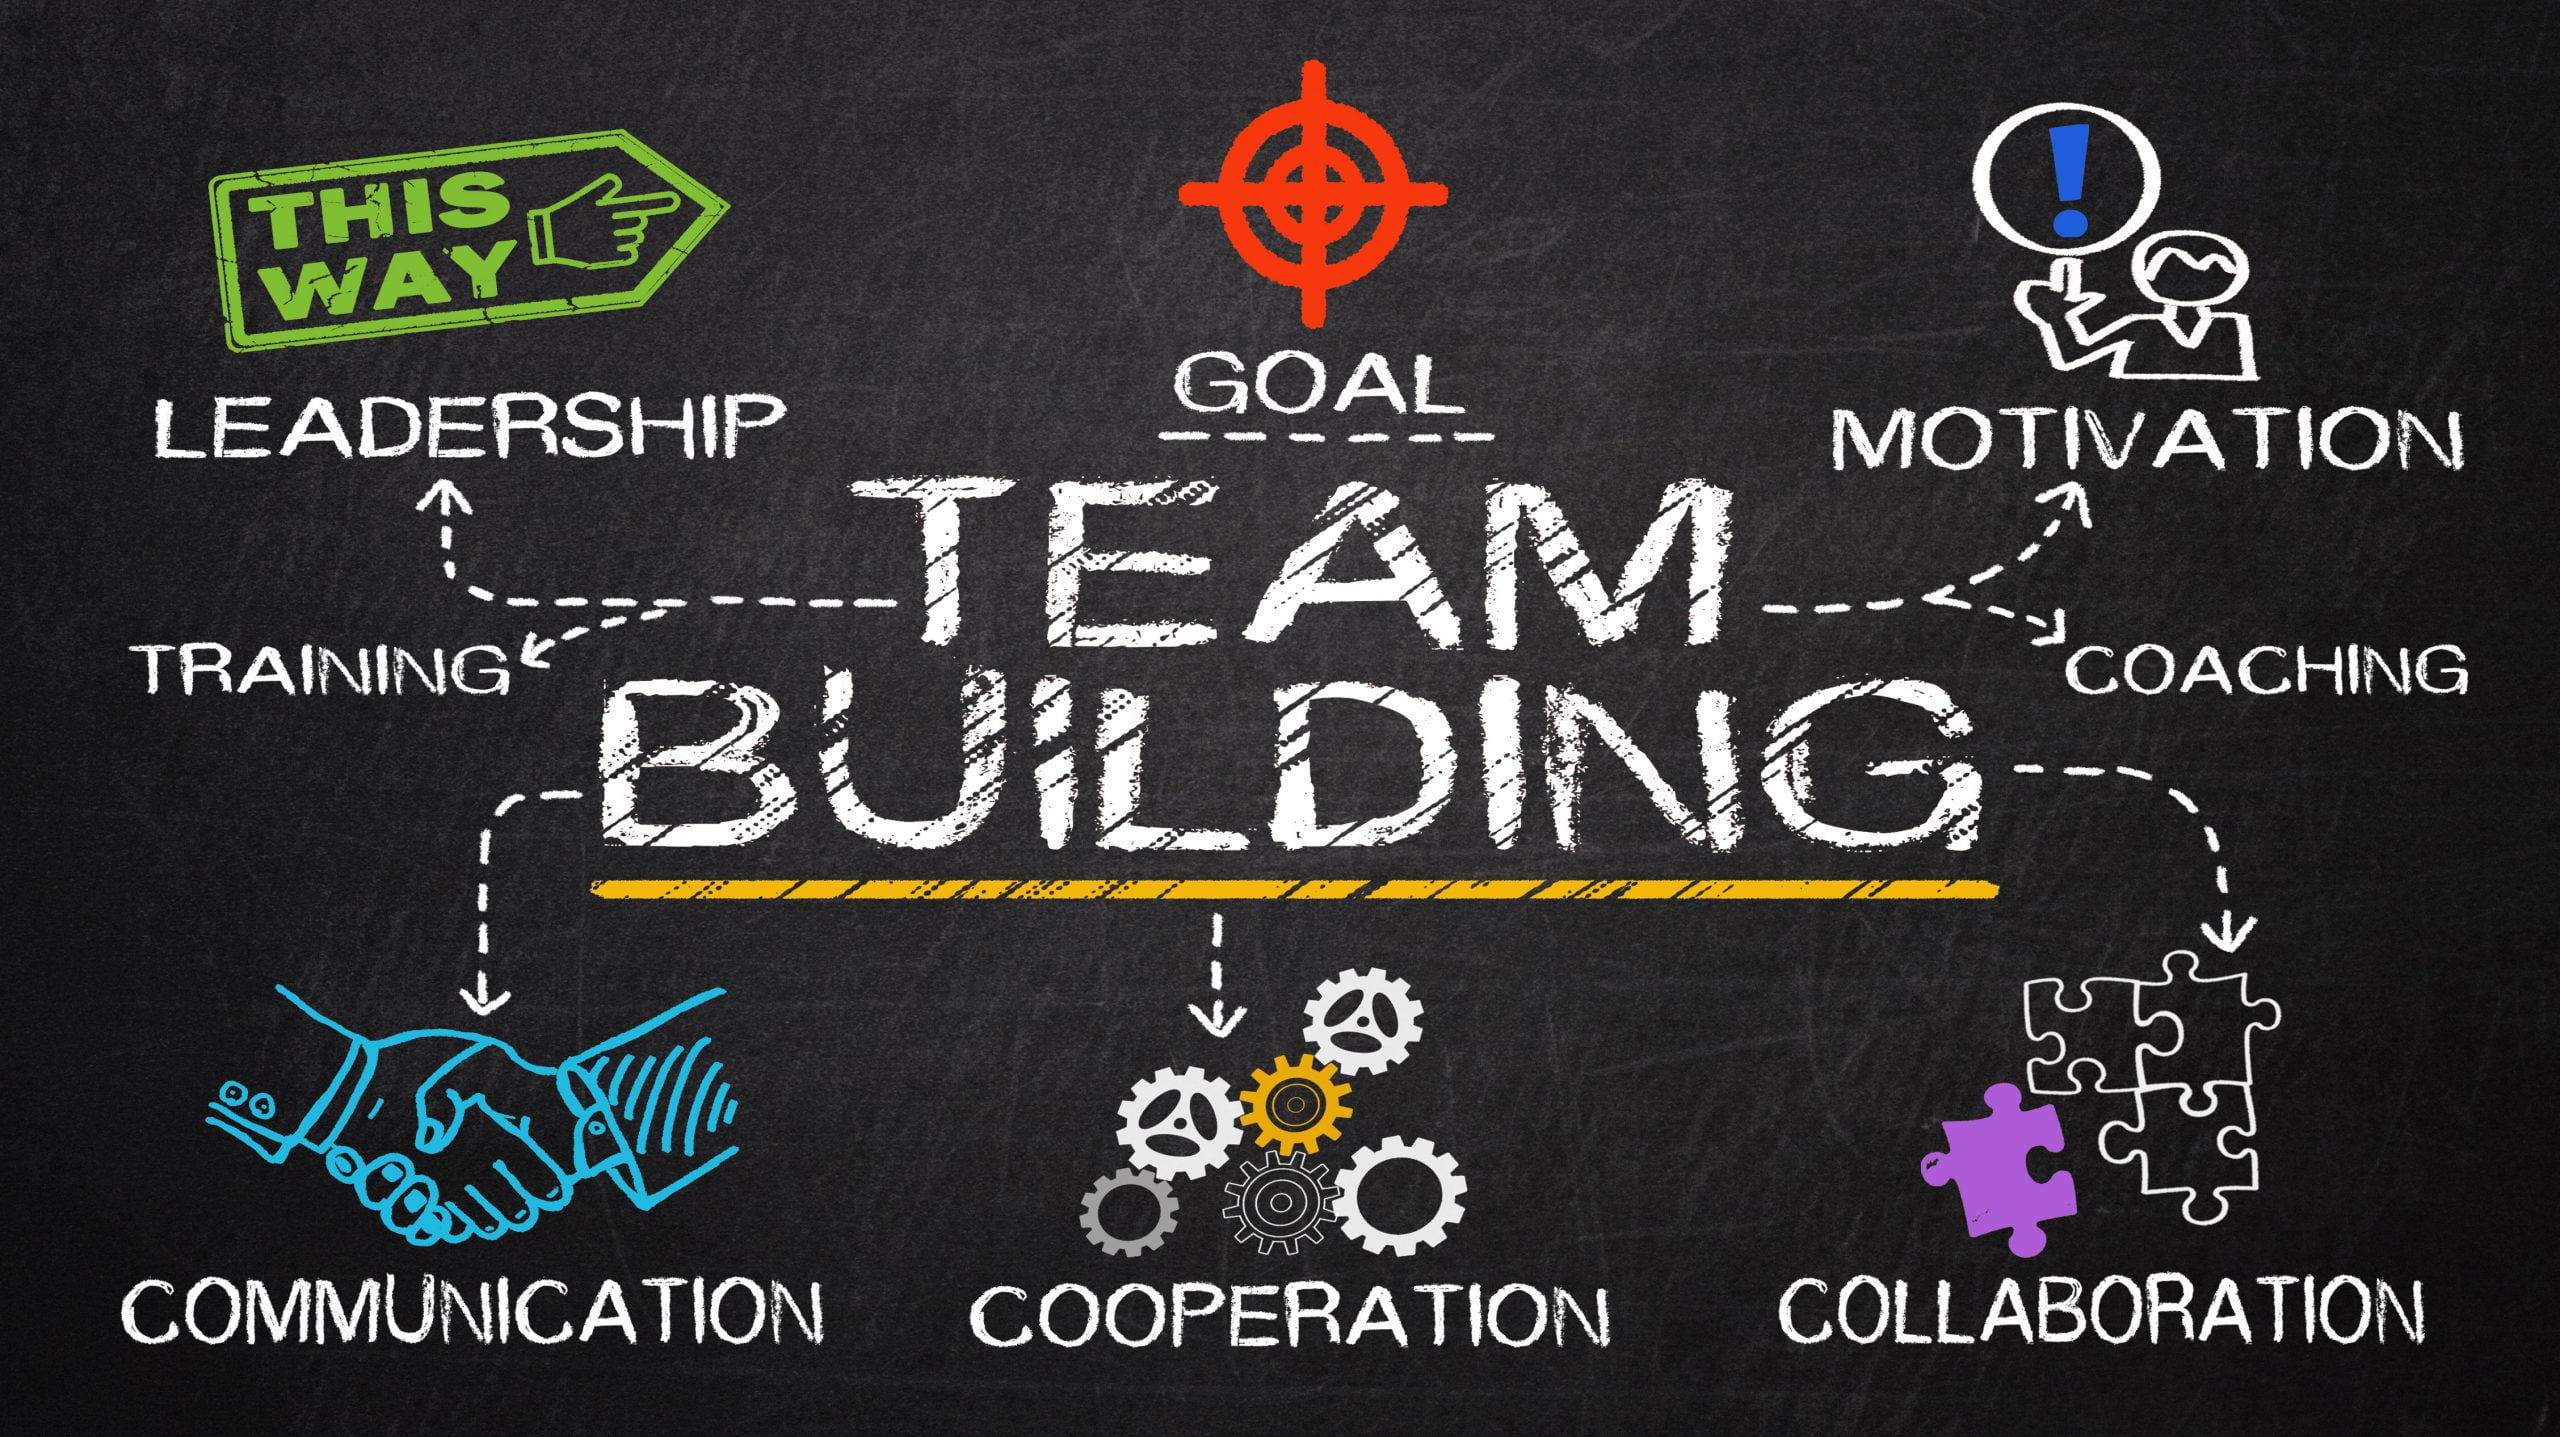 Team Building Trust and Improving Communication